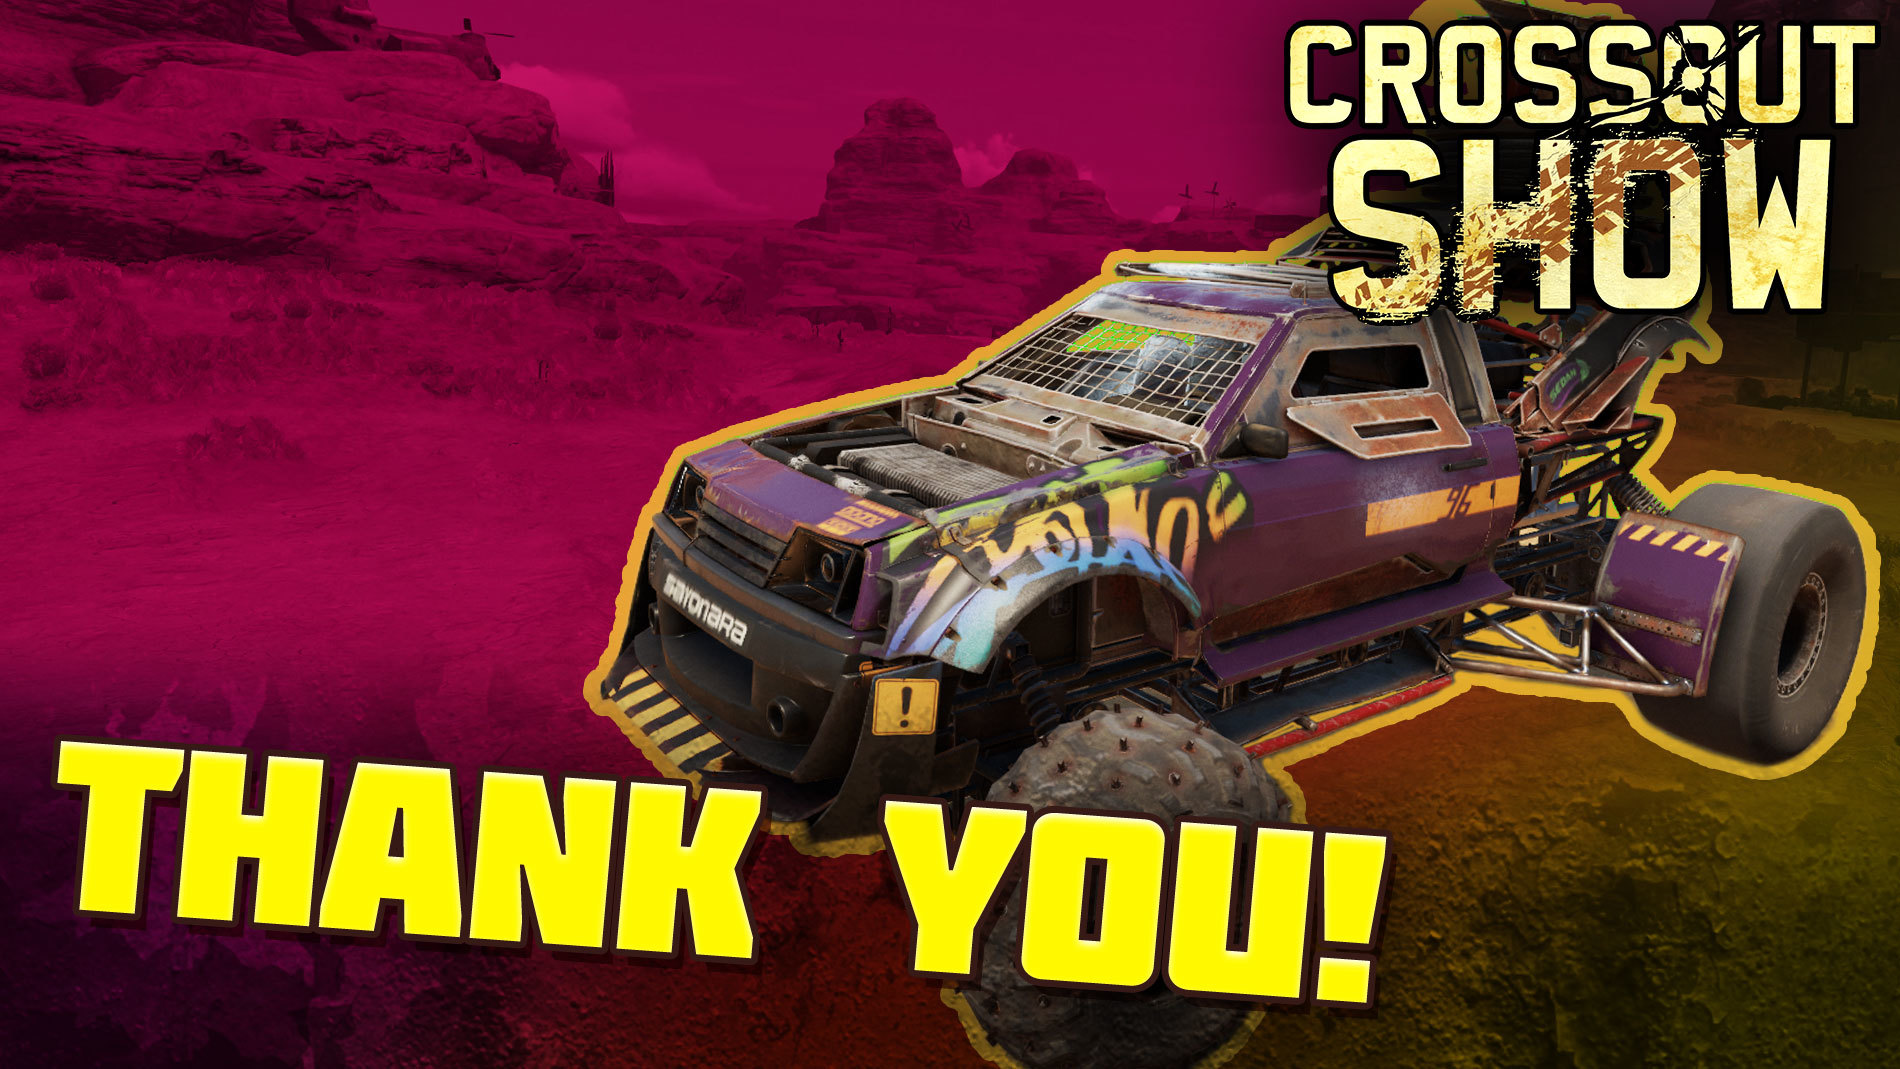 [Video] Crossout Show: Thank you!